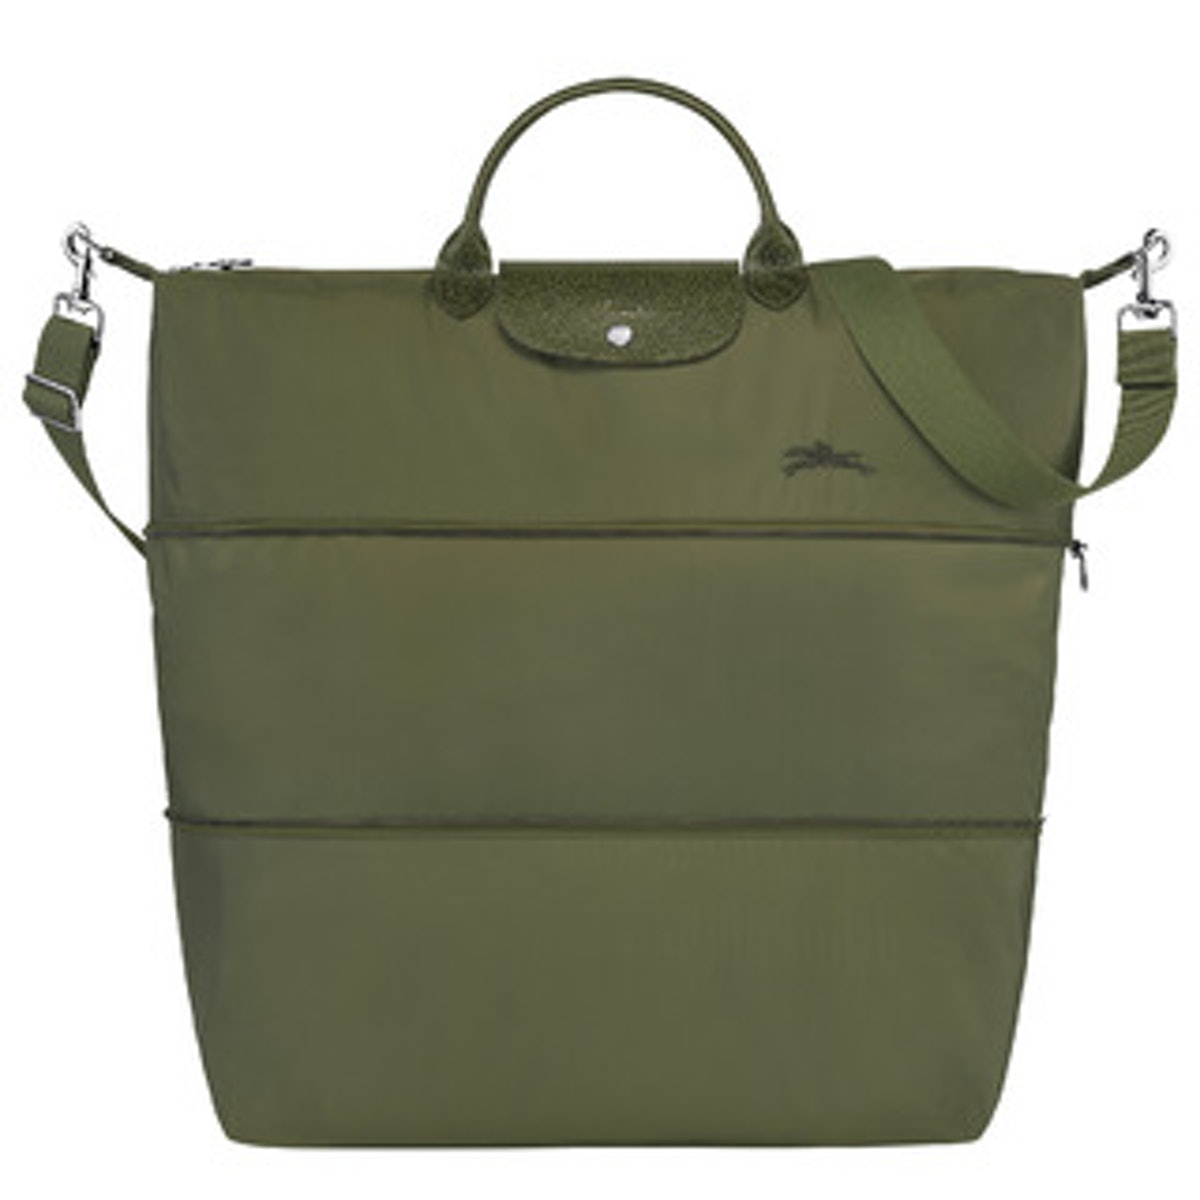 Longchamp's Le Pilage Travel Bag in forest green.